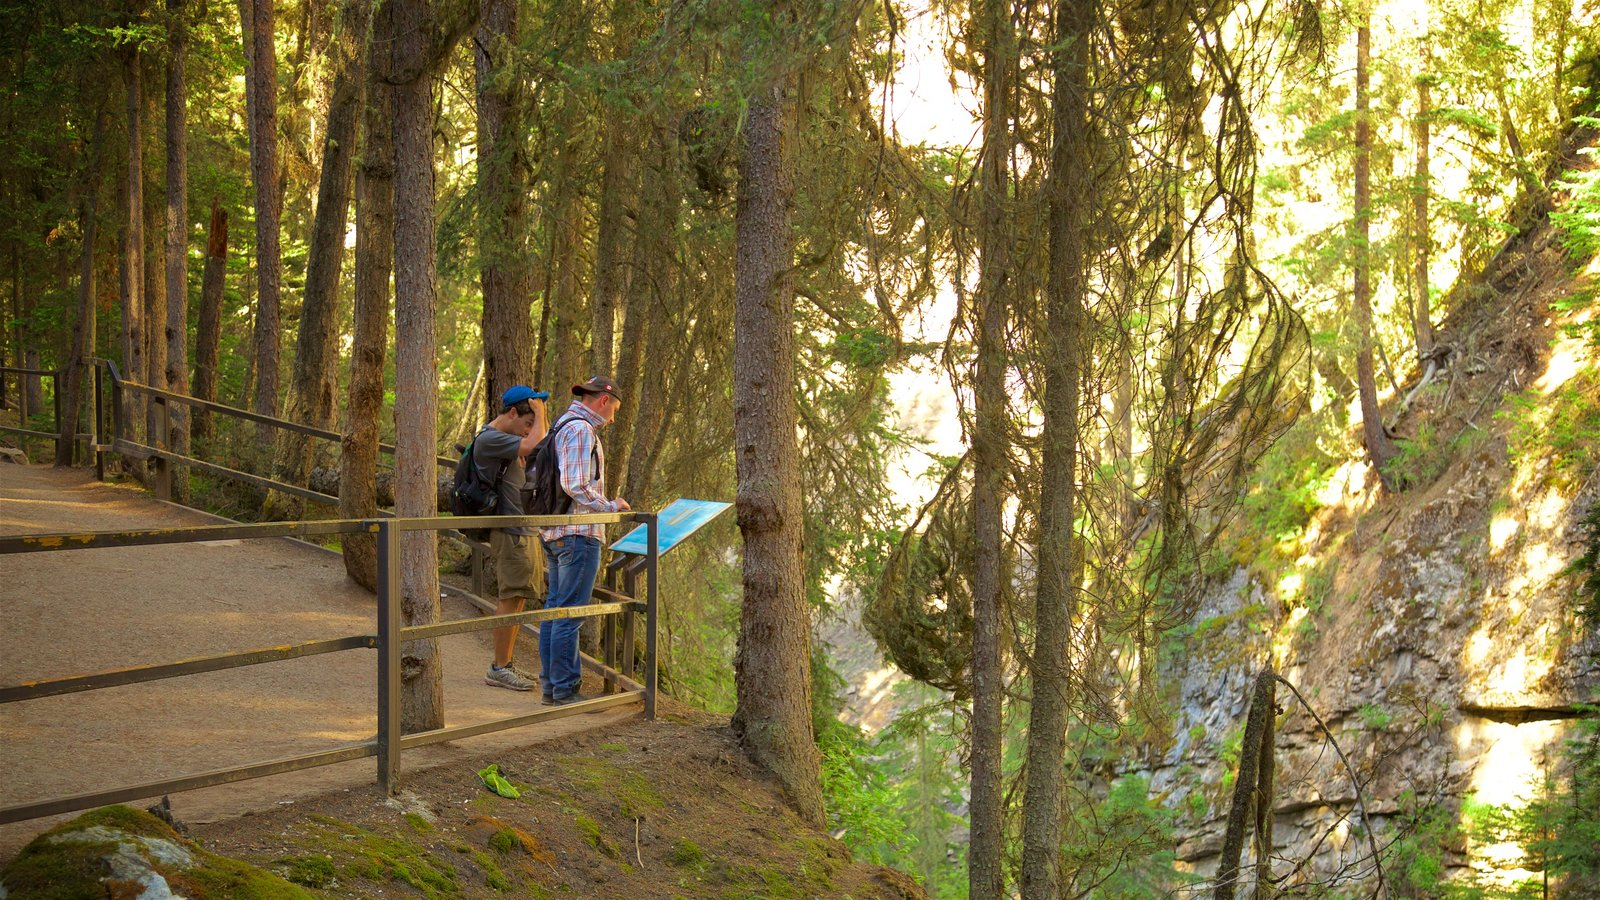 Johnston Canyon featuring forests and tranquil scenes as well as a small group of people